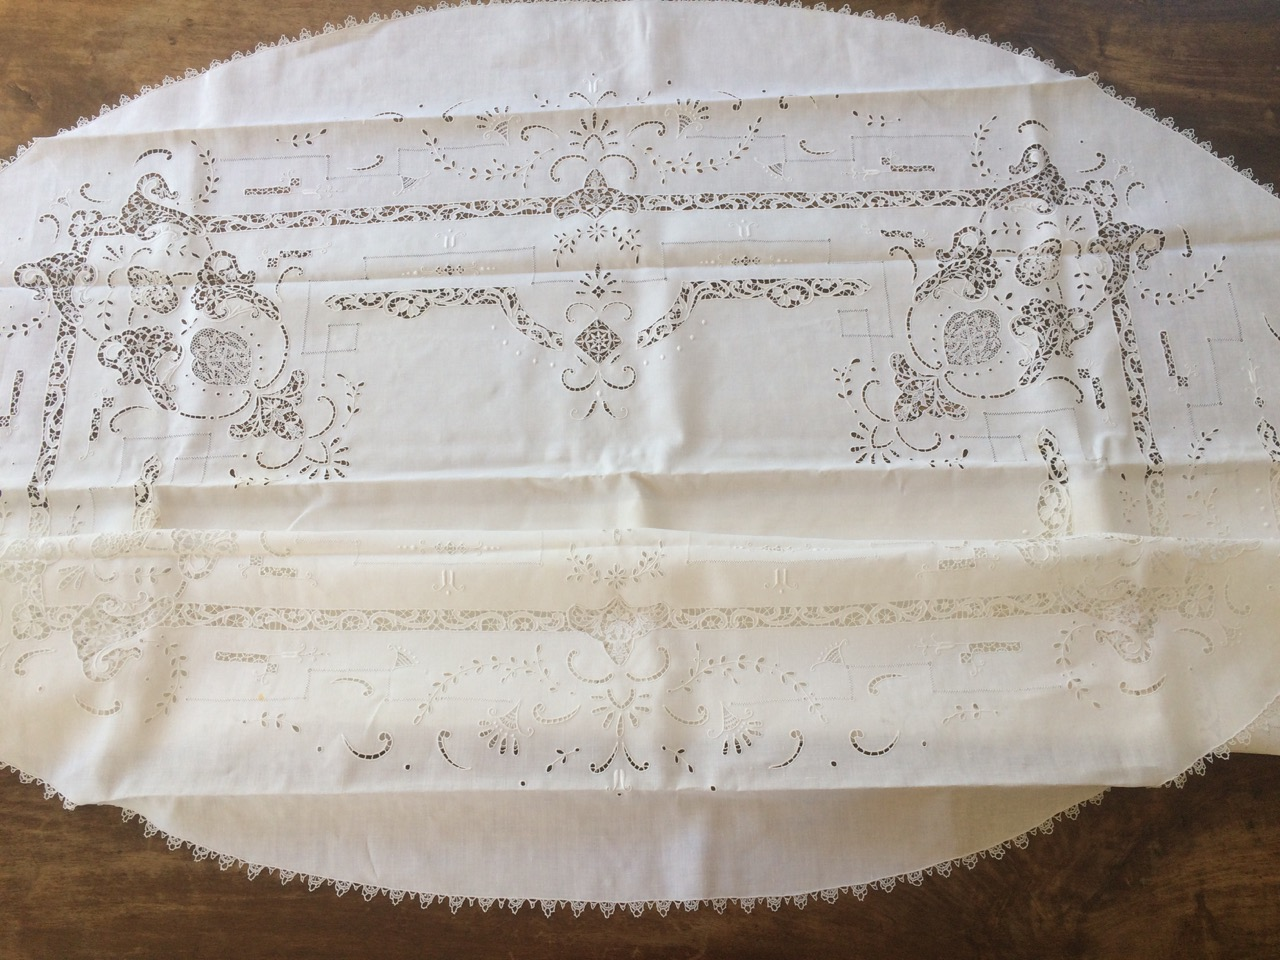 Lace Tablecloths Oval 300x300.jpg 120,00u20ac. Fine Oval Tablecloth With Lace ...